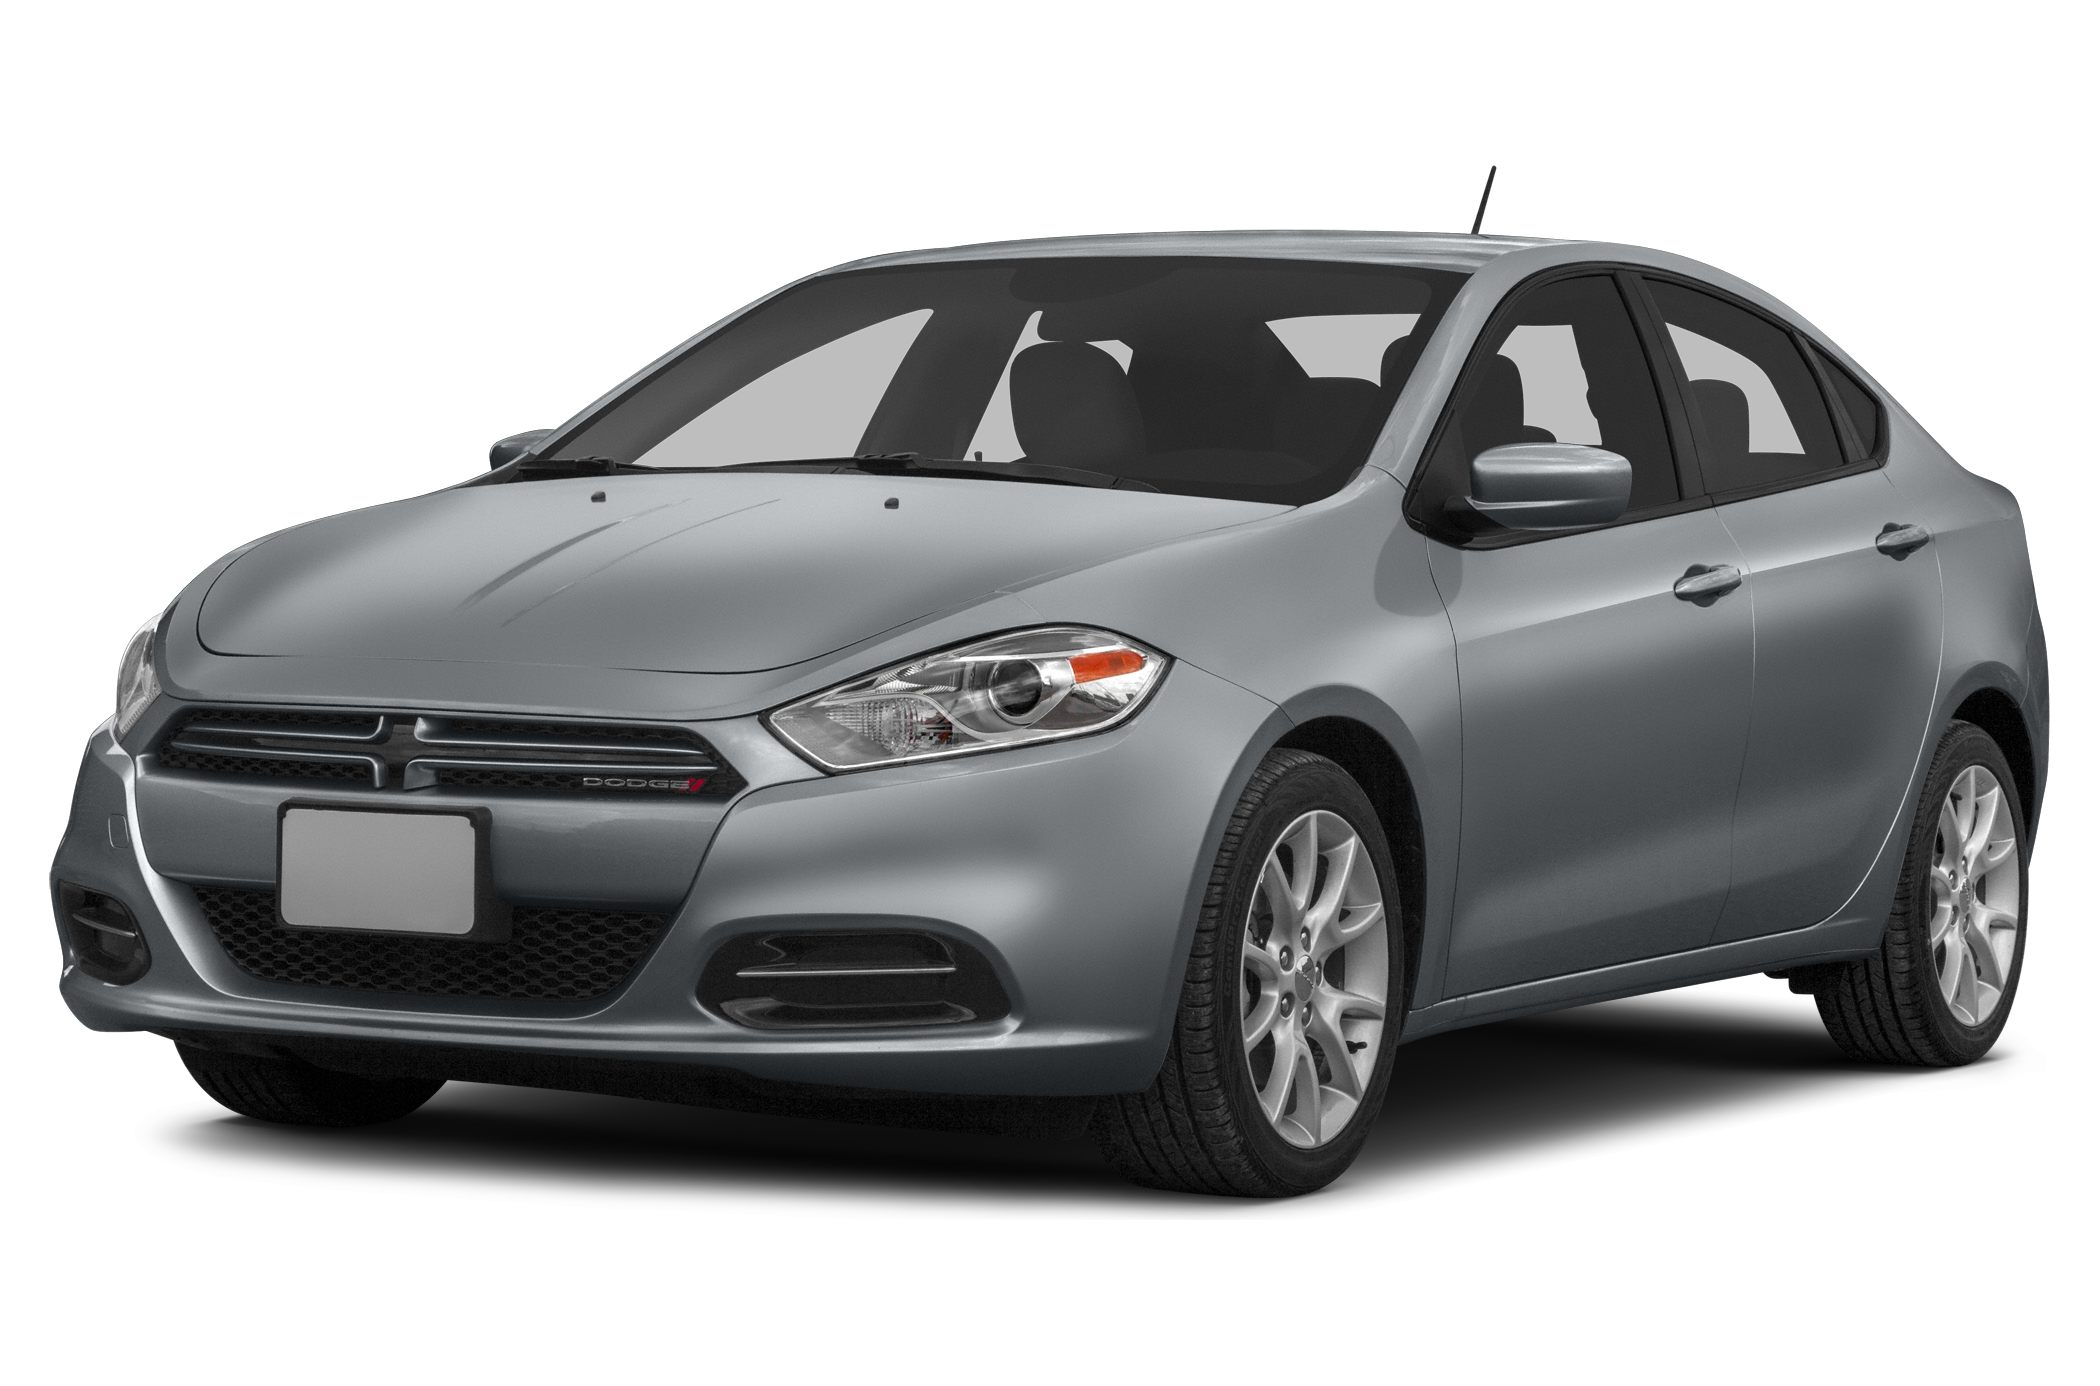 2015 Dodge Dart SE Sedan for sale in Hillsboro for $16,177 with 2 miles.